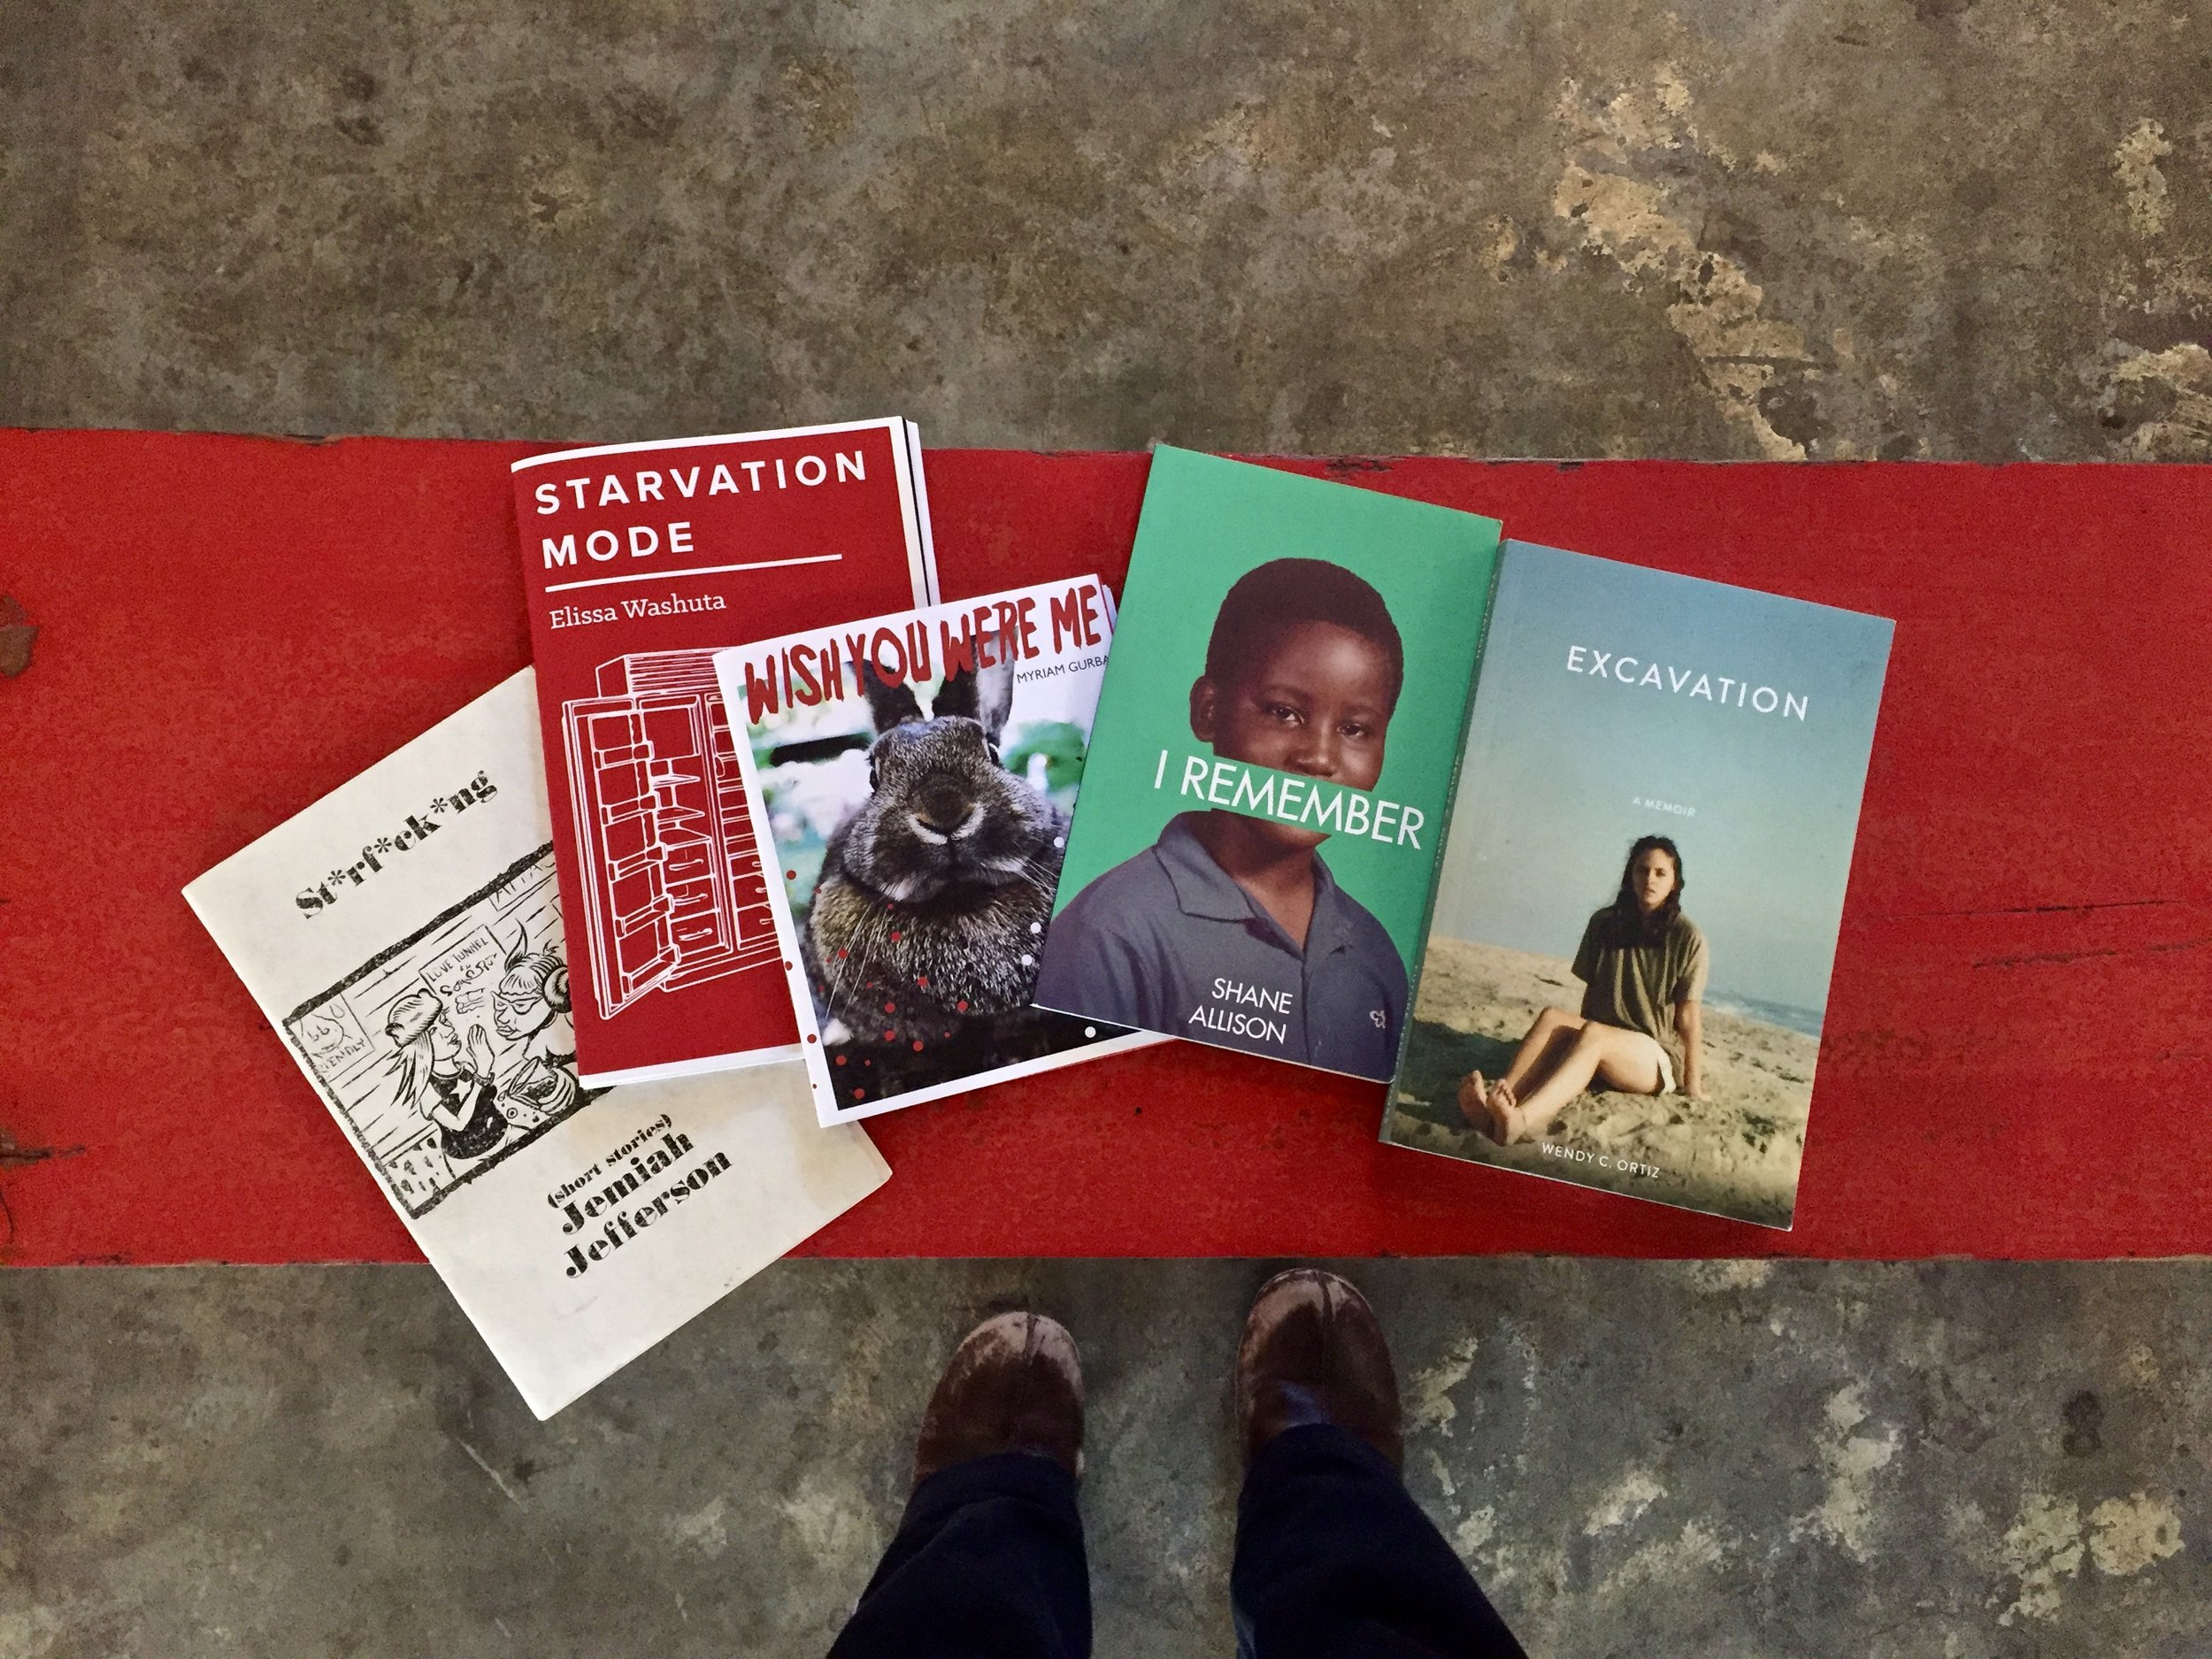 We also received book donations from local publisher Kevin Sampsell, from his  Future Tense Books  catalog, a Portland-based small press.